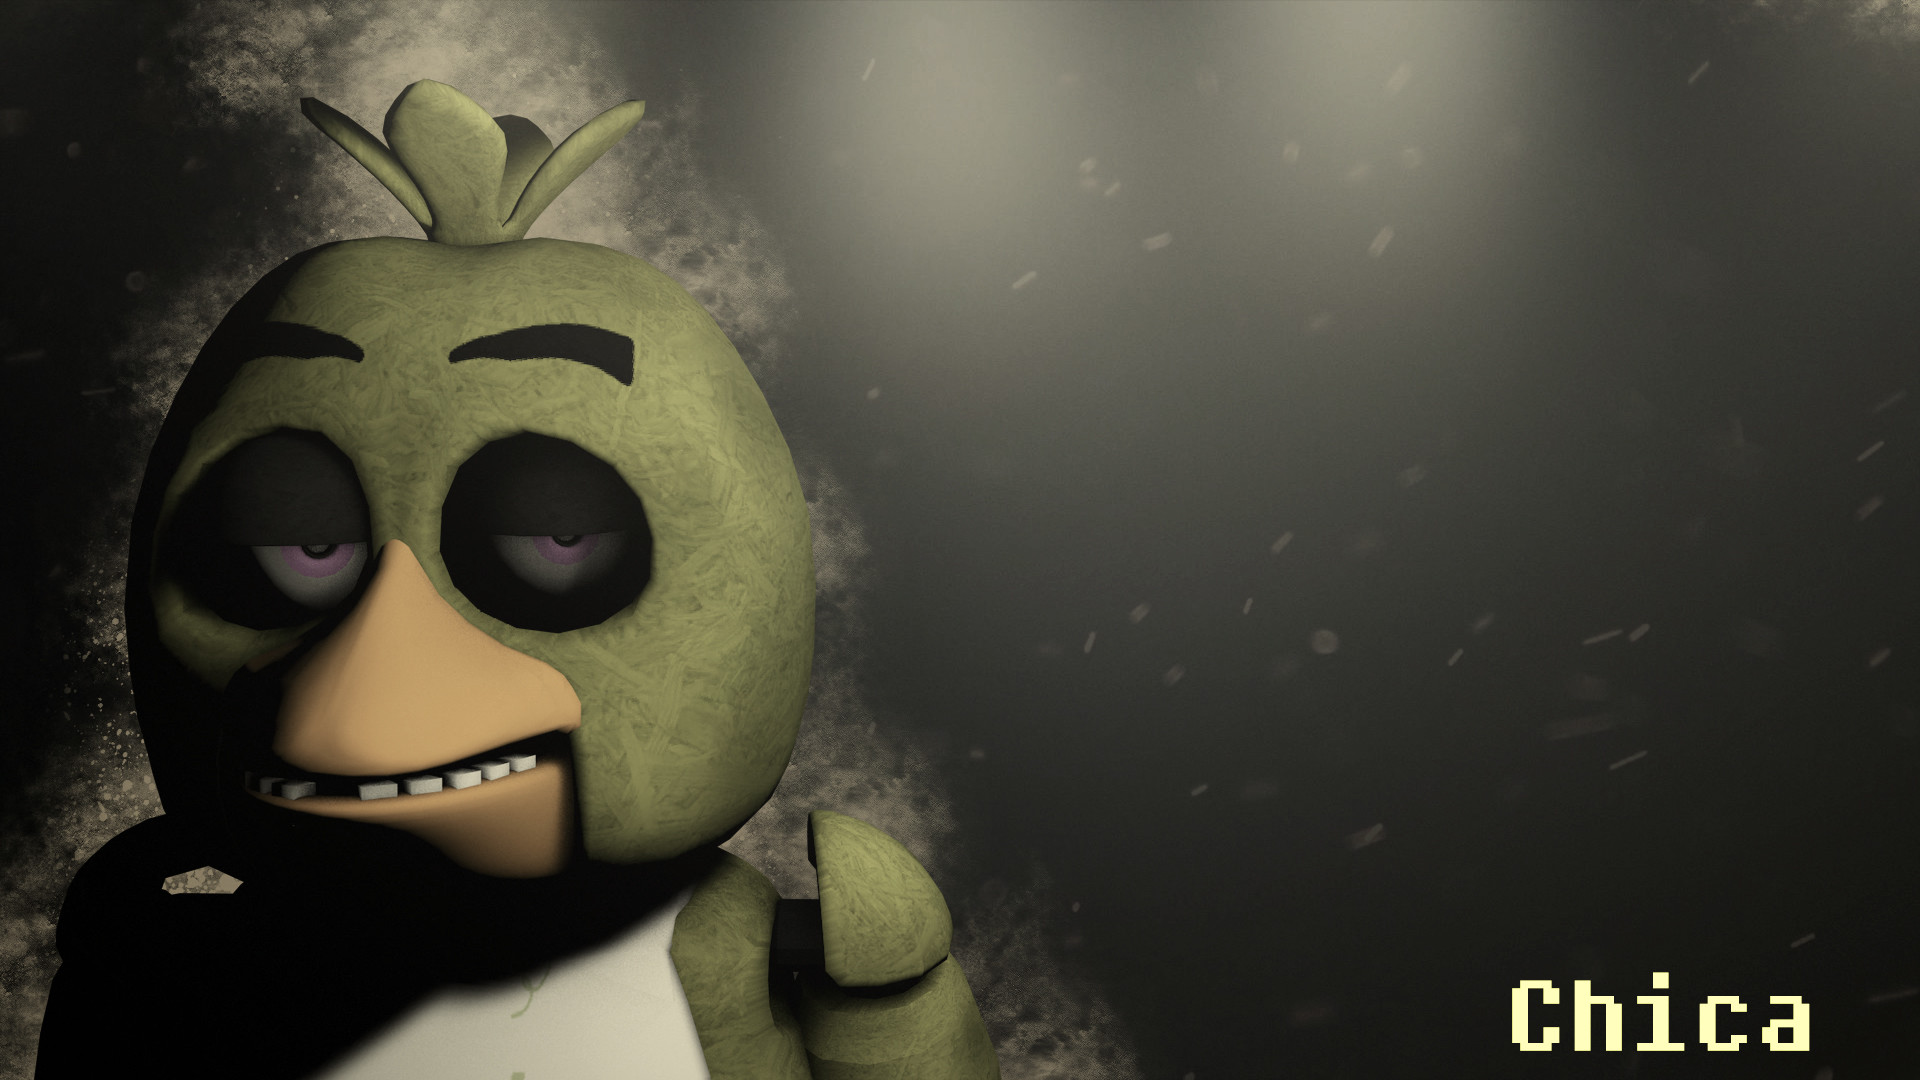 1920x1080 ... Five Nights at Freddy's Chica Wallpaper DOWNLOAD by NiksonYT